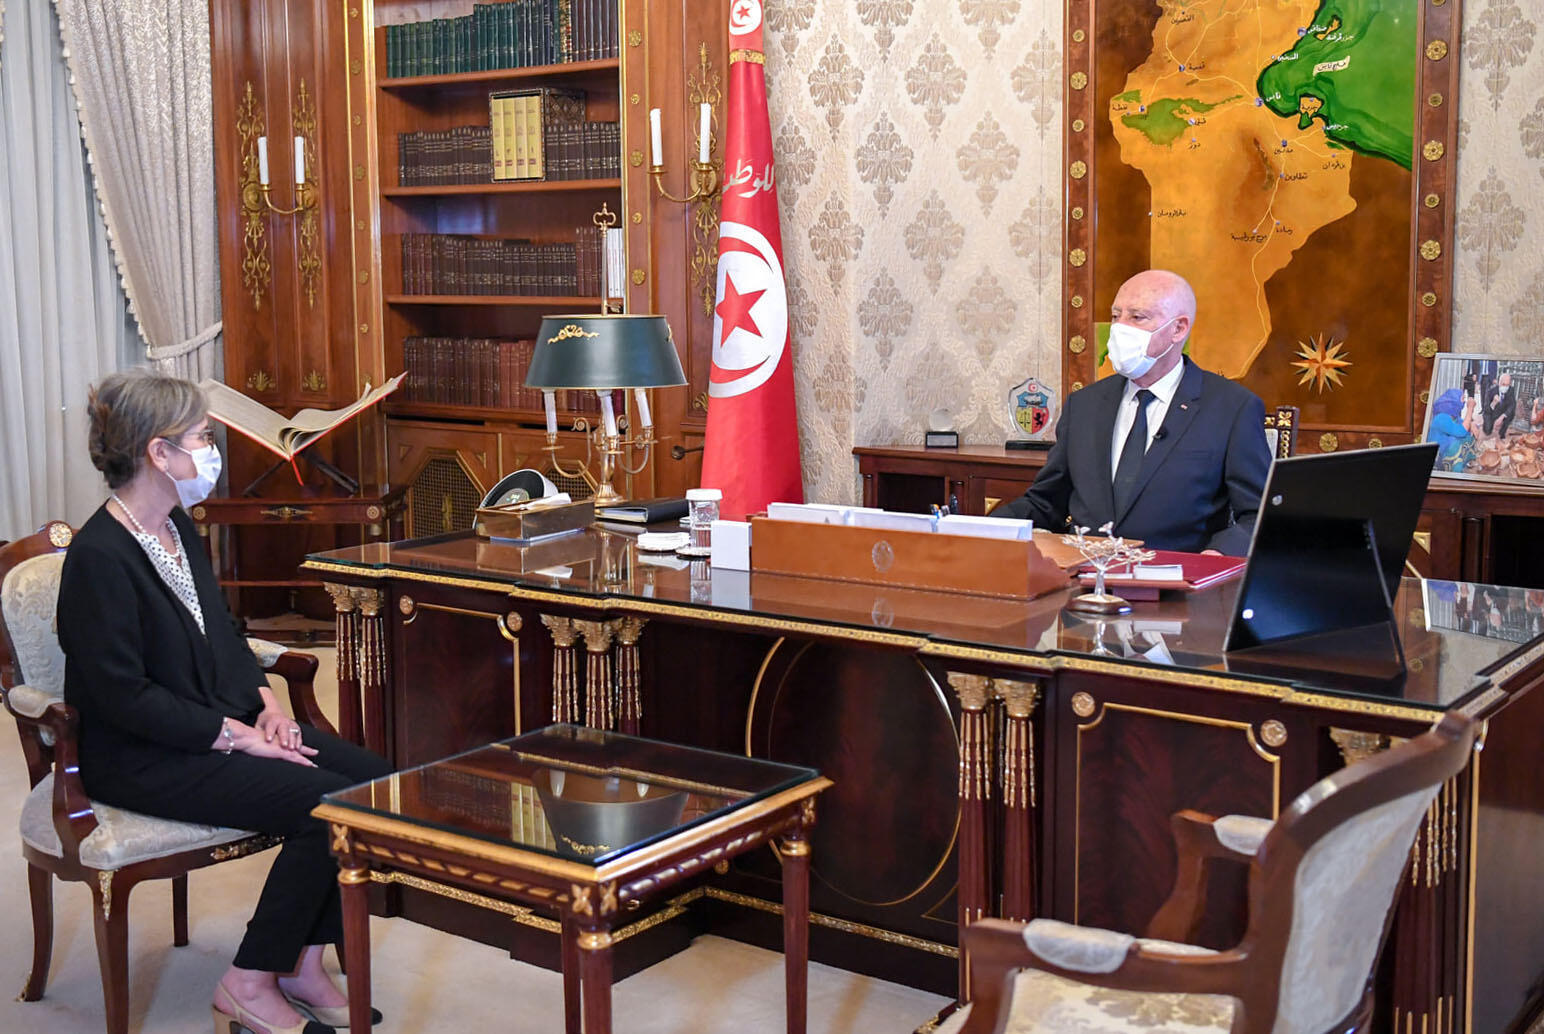 Saied said the new government's main mission would be to 'put an end to the corruption and chaos that have spread throughout many state institutions'